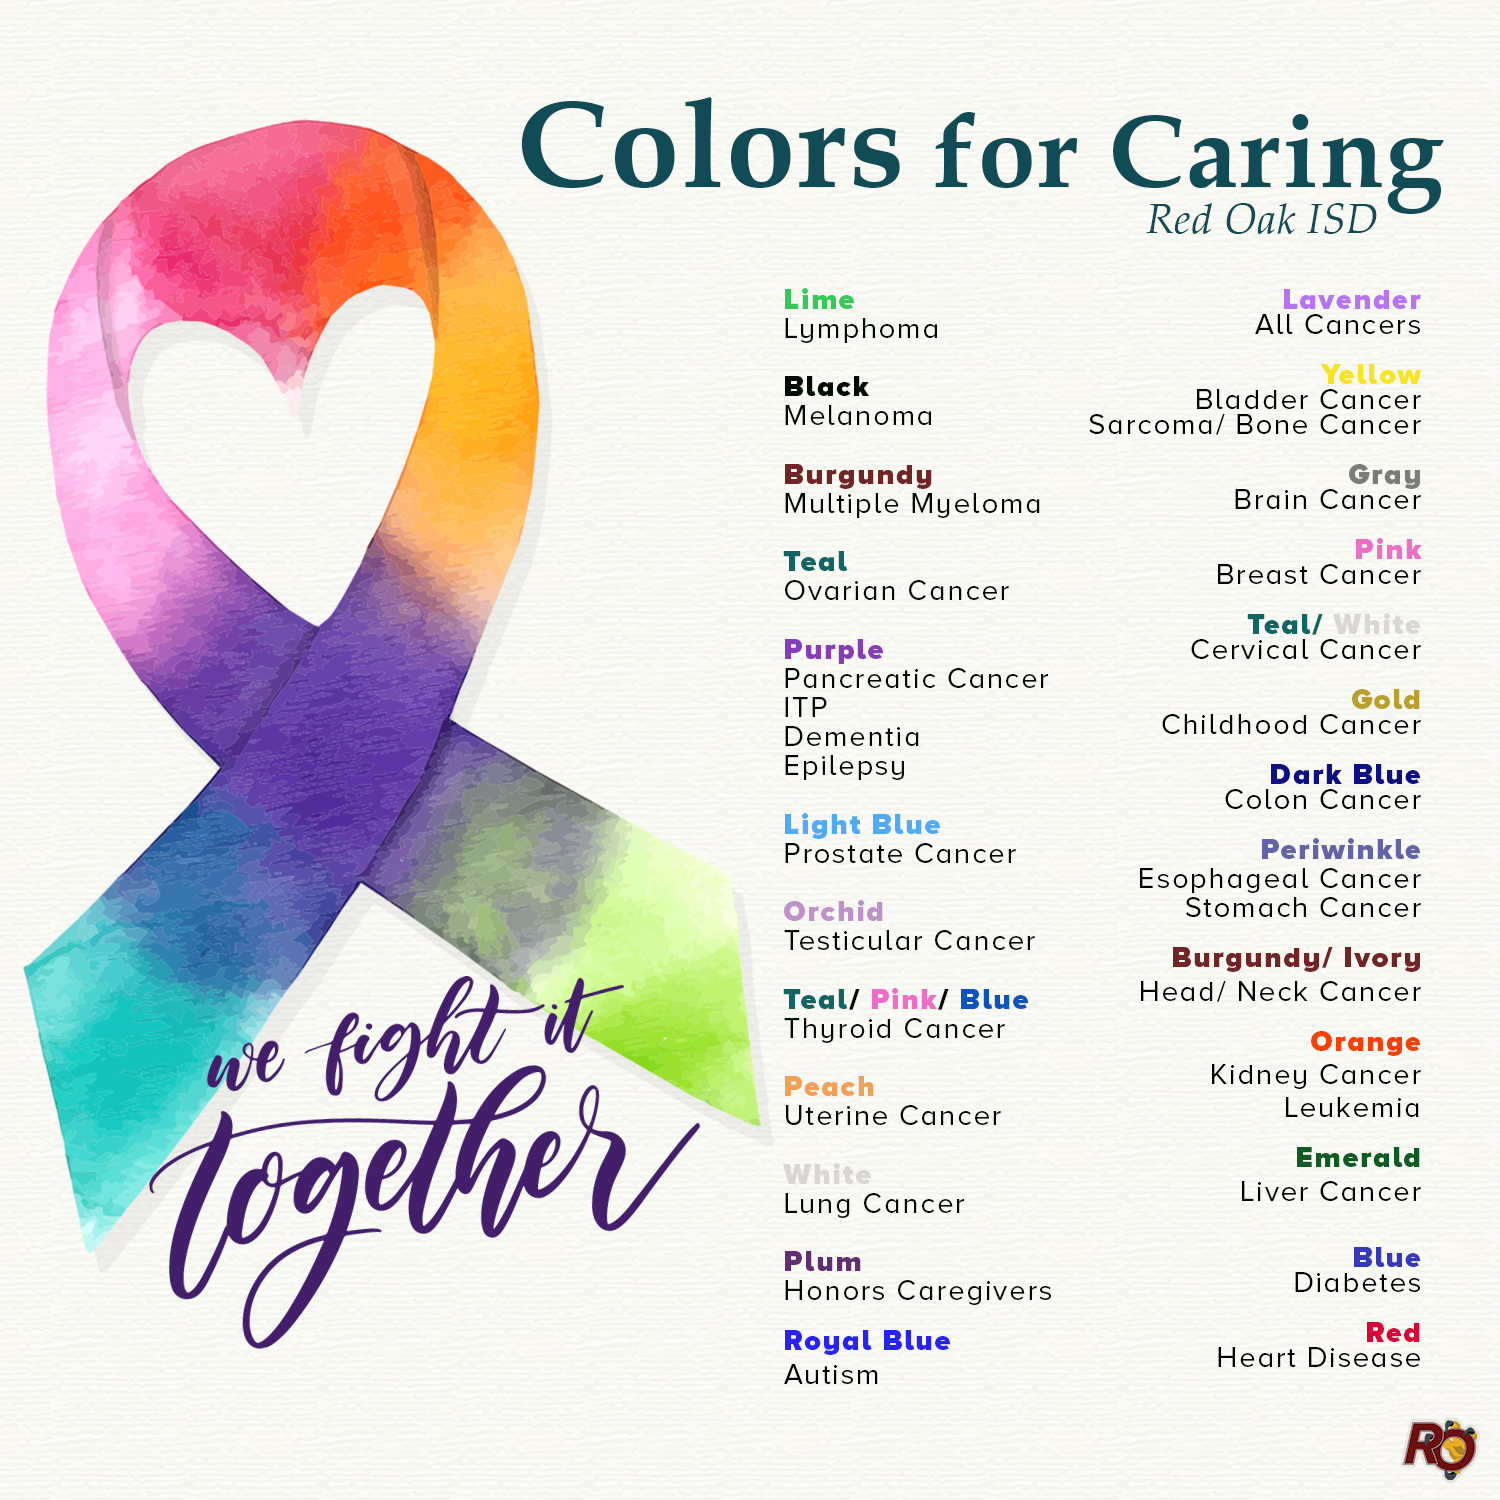 Red Oak Isd Colors For Caring